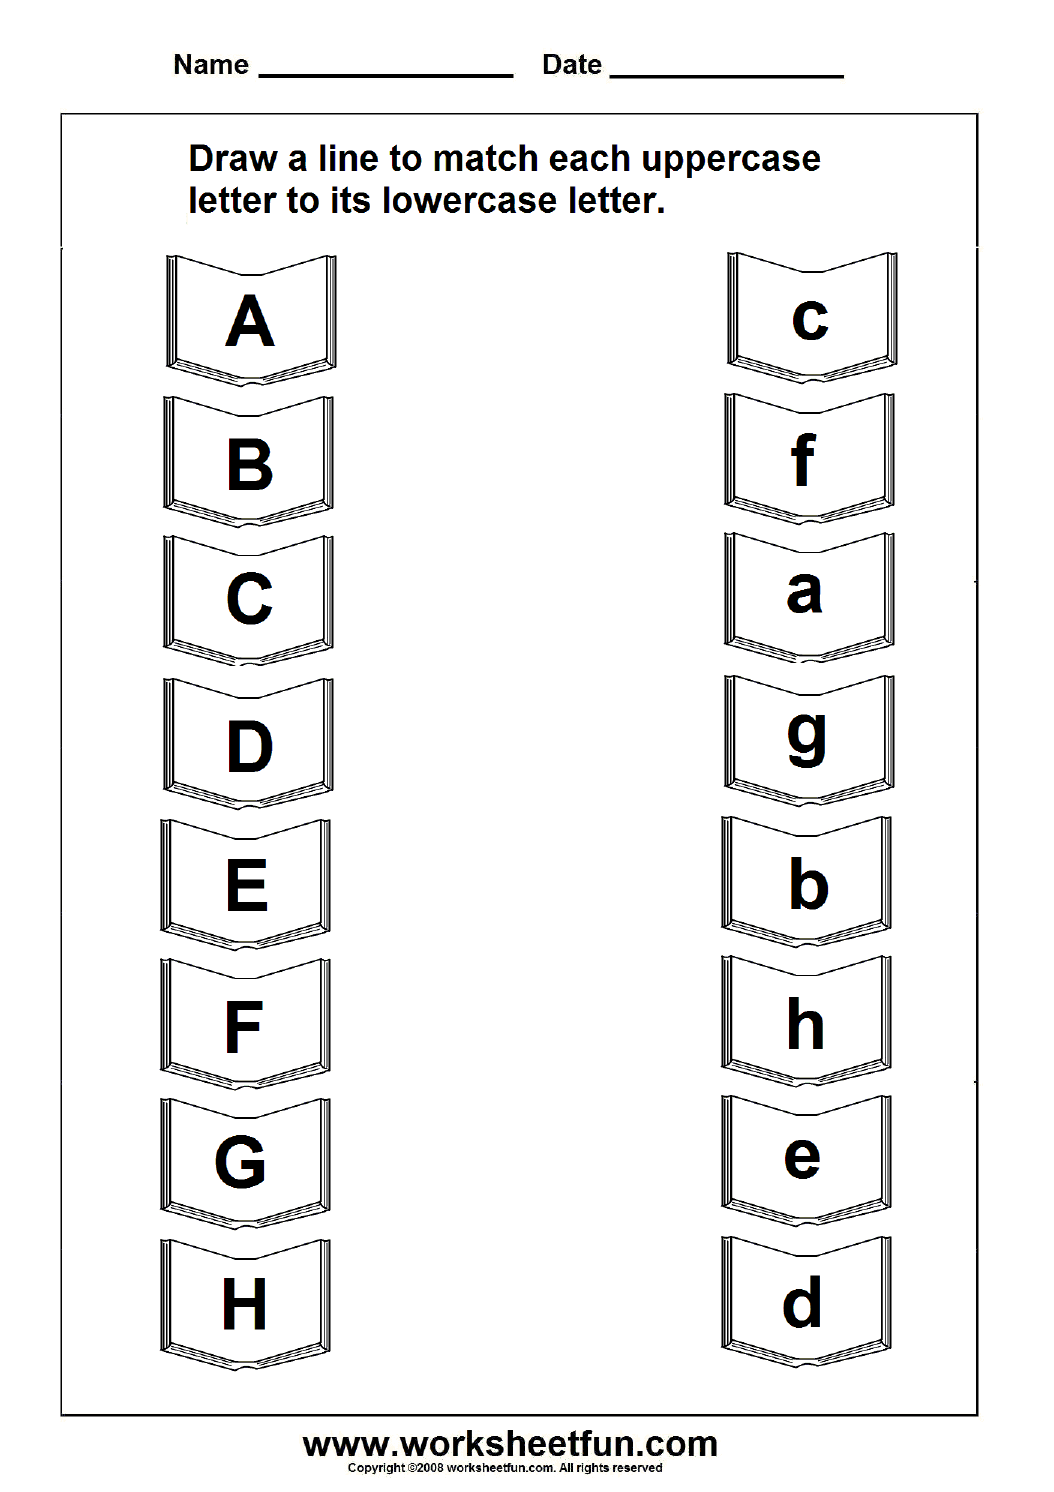 Match Uppercase And Lowercase Letters 11 Worksheets